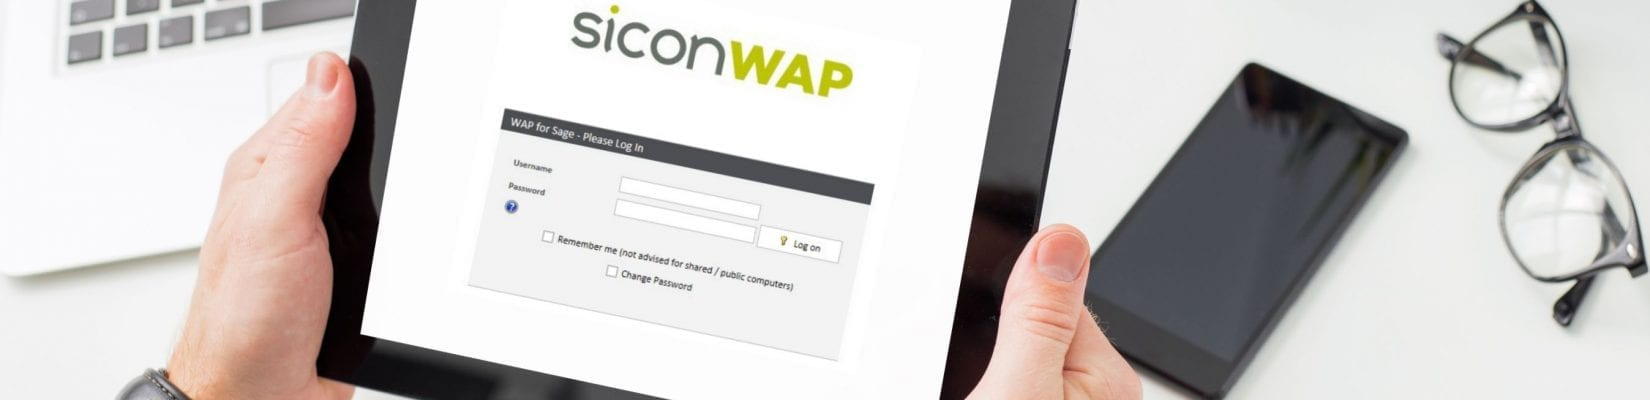 WAP Add-on for Sage 200 Help and User Guide